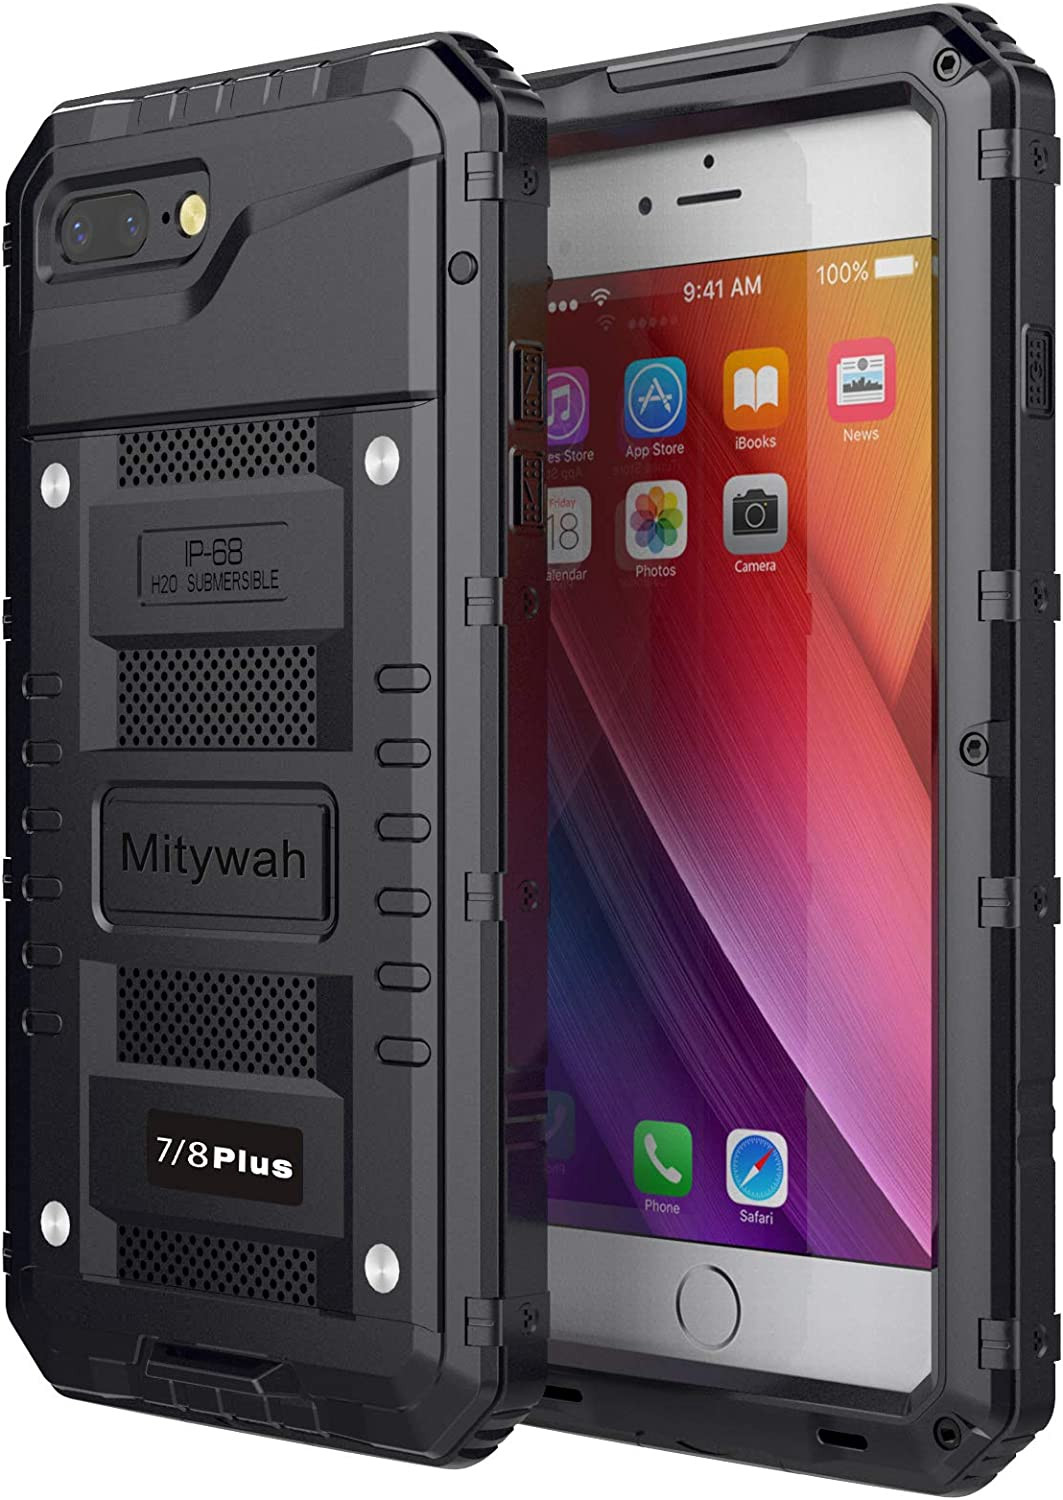 Mitywah Waterproof Case for iPhone 7/8 Plus, Heavy Duty Durable Metal Full Body Protective Case Built-in Screen Protection Dropproof Shockproof Dustproof Rugged Military Grade Defender, Black